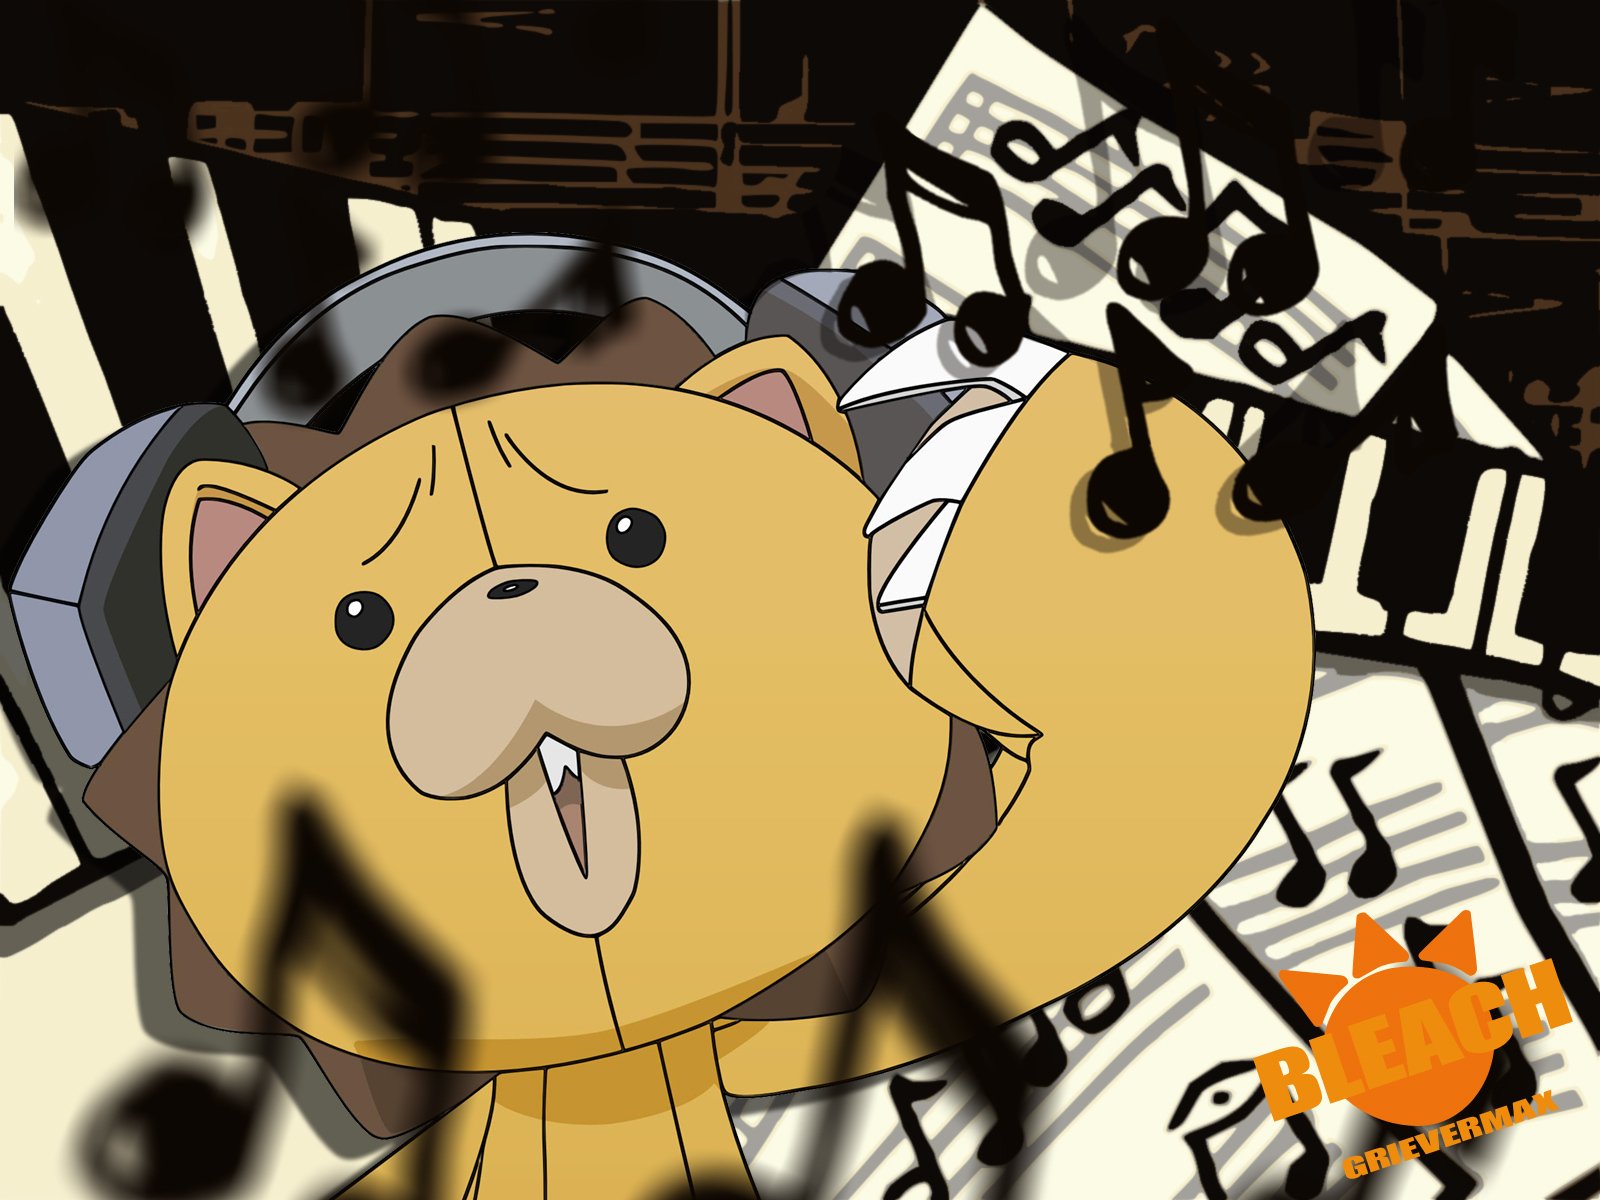 Kon With Headphones On In a Music Notes in the Background   Bleach 1600x1200